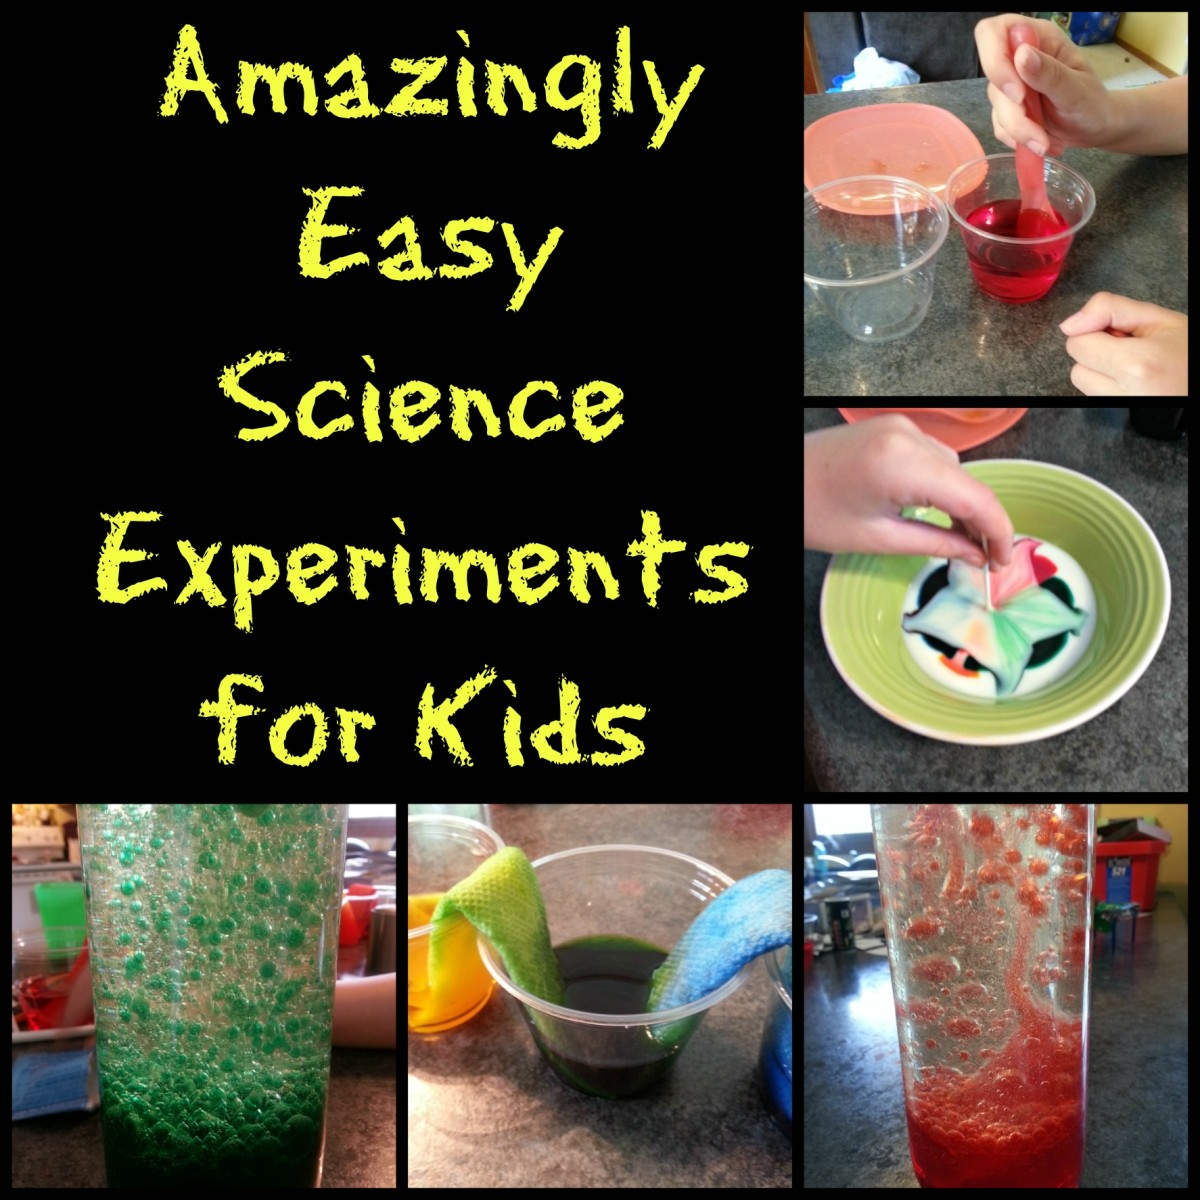 Fun with Science!